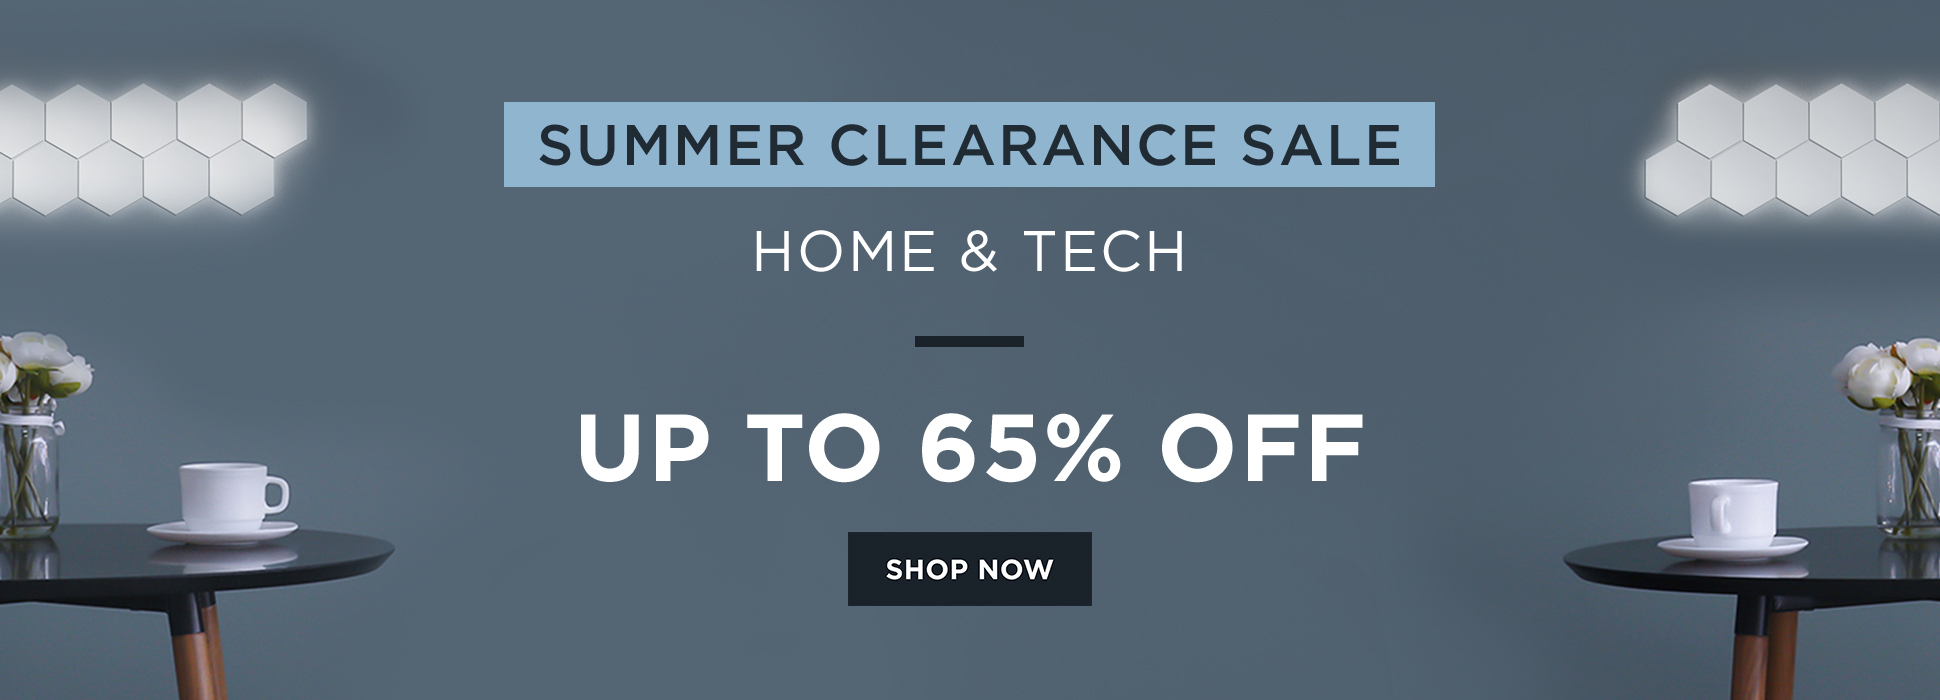 Summer Clearance - Home + Tech (Web Banner)